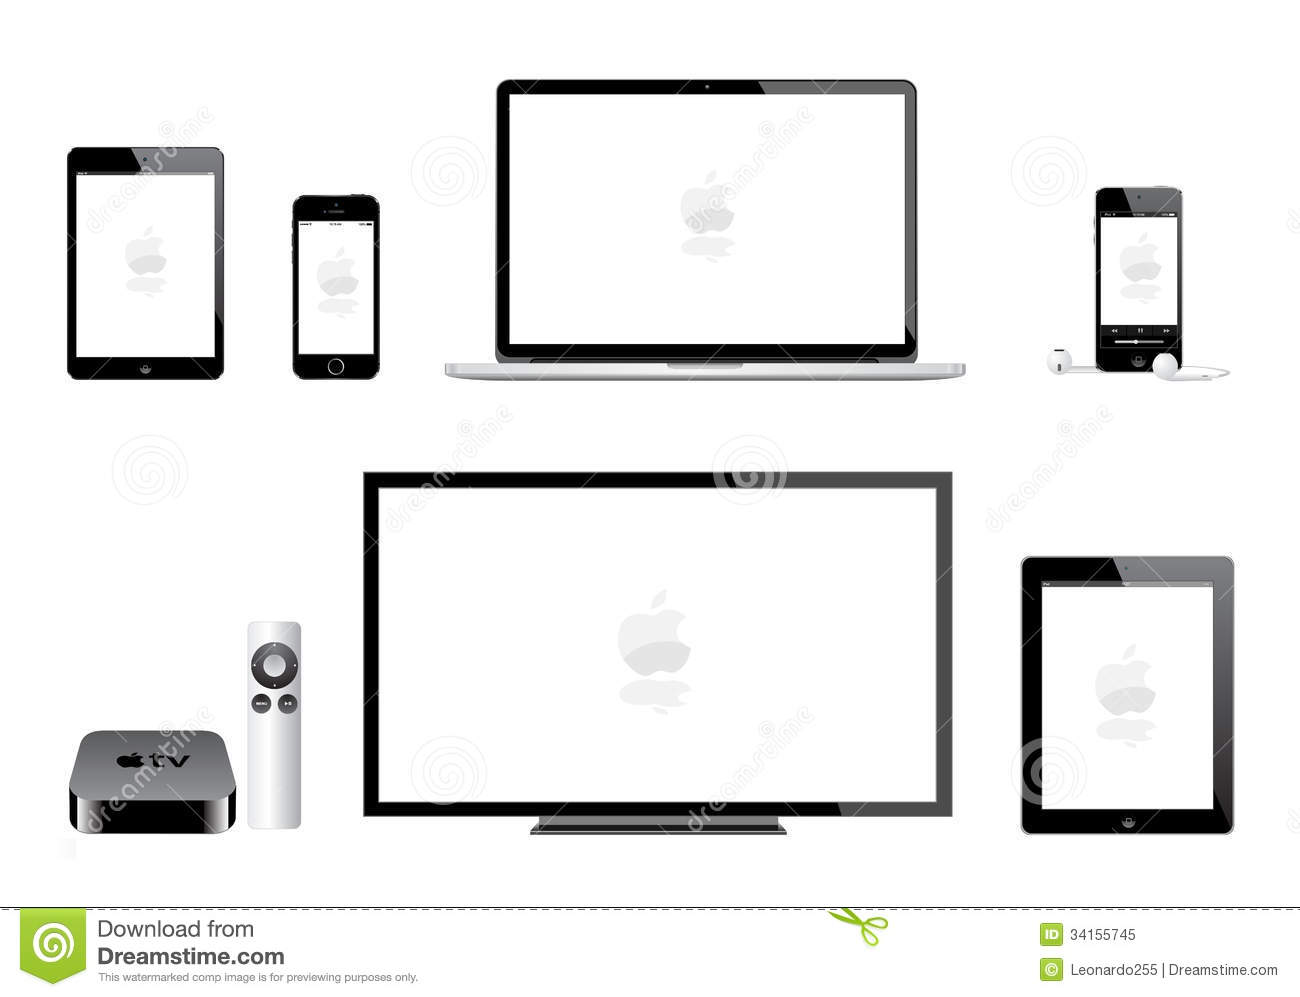 hight resolution of apple ipad mini iphone ipod mac tv editorial image illustration of apple tv 1st generation mac tv diagram